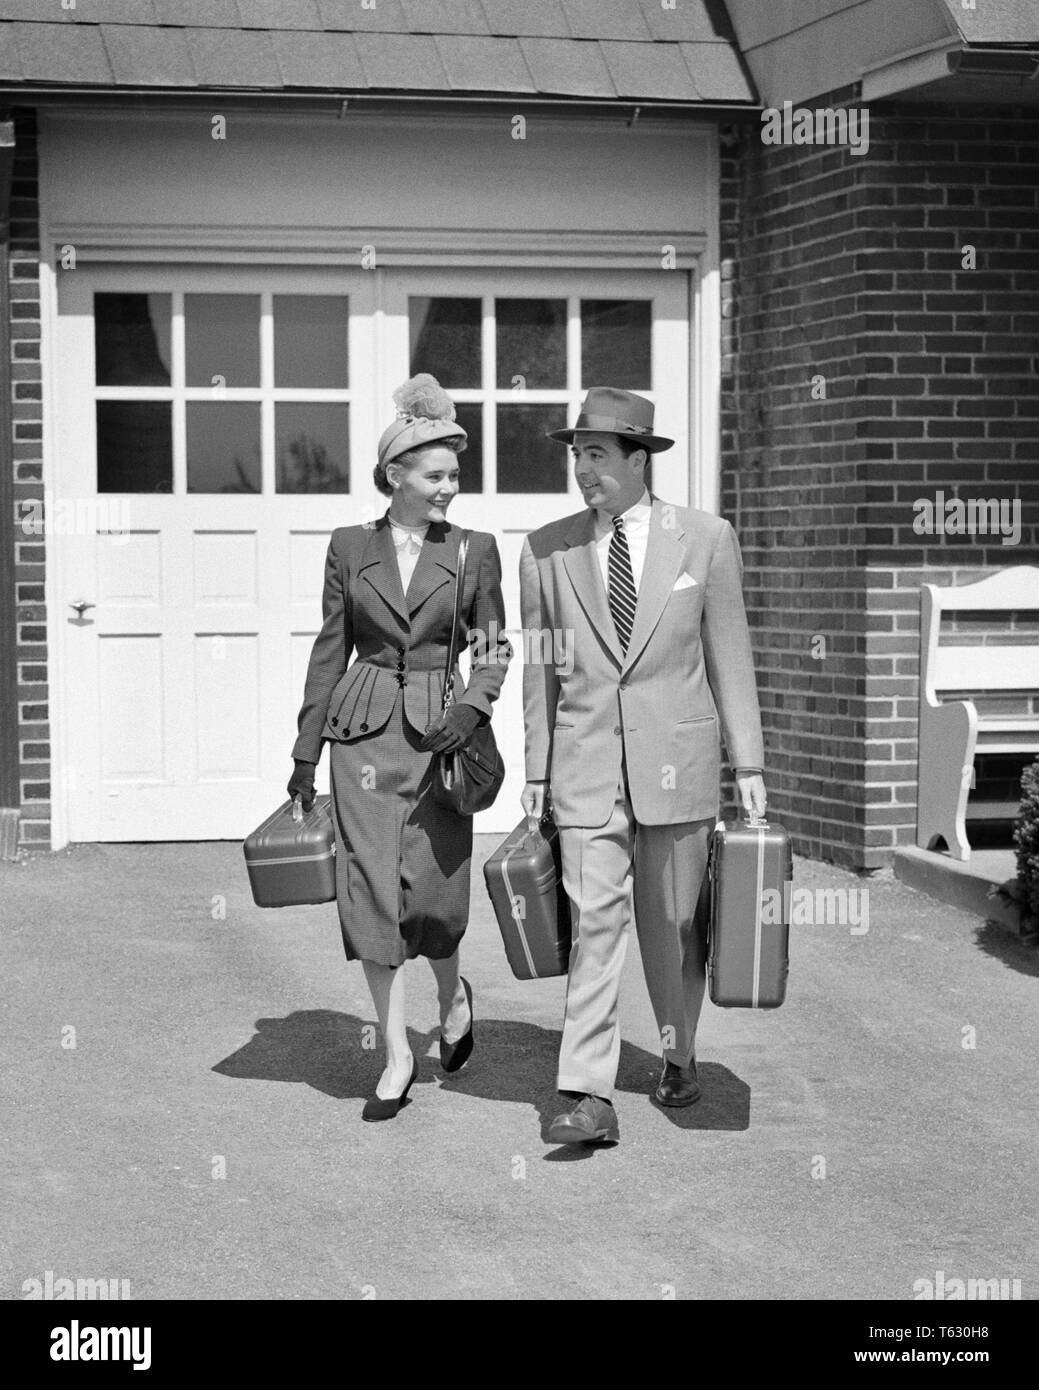 1950s COUPLE FASHIONABLY DRESSED WALKING DOWN DRIVEWAY CARRYING LUGGAGE - s177 HAR001 HARS FEMALES MARRIED SPOUSE HUSBANDS HEALTHINESS HOME LIFE COPY SPACE FRIENDSHIP FULL-LENGTH LADIES PERSONS MALES B&W PARTNER SUIT AND TIE HAPPINESS ADVENTURE LEISURE STYLES TRIP EXCITEMENT CONNECTION FASHIONABLY STYLISH COOPERATION FASHIONS MID-ADULT MID-ADULT MAN MID-ADULT WOMAN TOGETHERNESS WIVES BLACK AND WHITE CAUCASIAN ETHNICITY HAR001 OLD FASHIONED - Stock Image